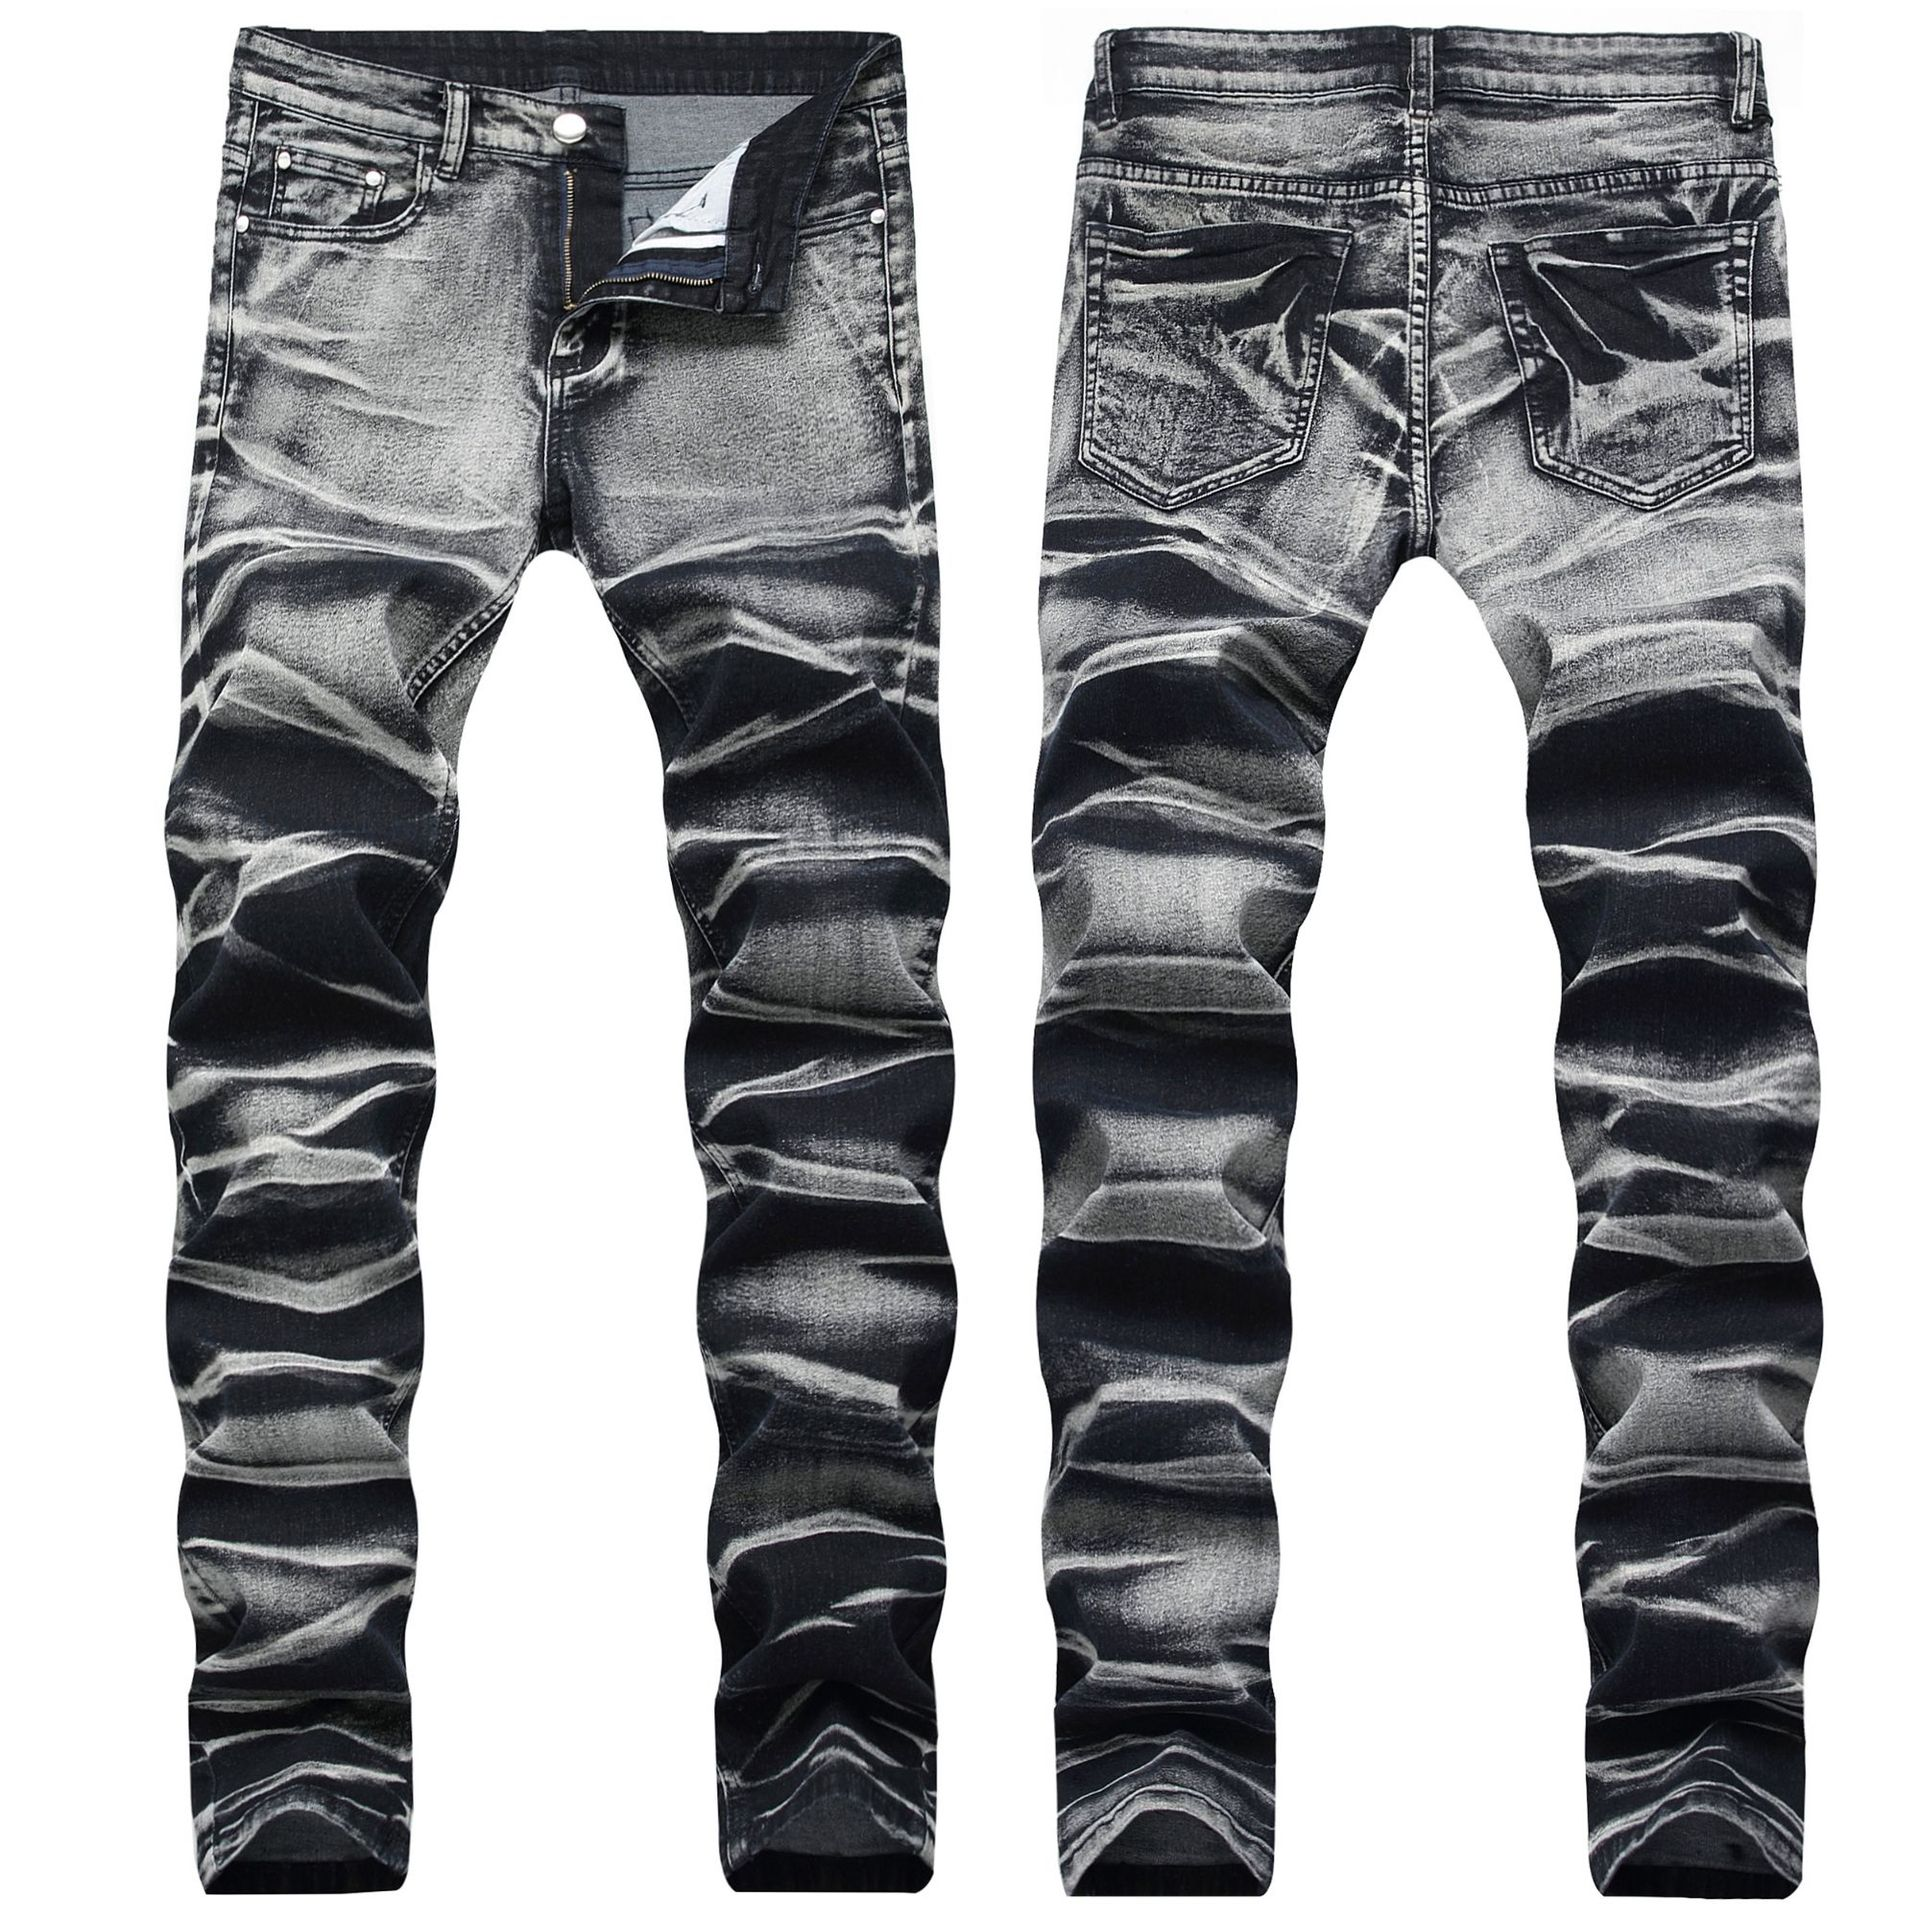 BALMAIN Men's pleated jeans for cheap #9120592